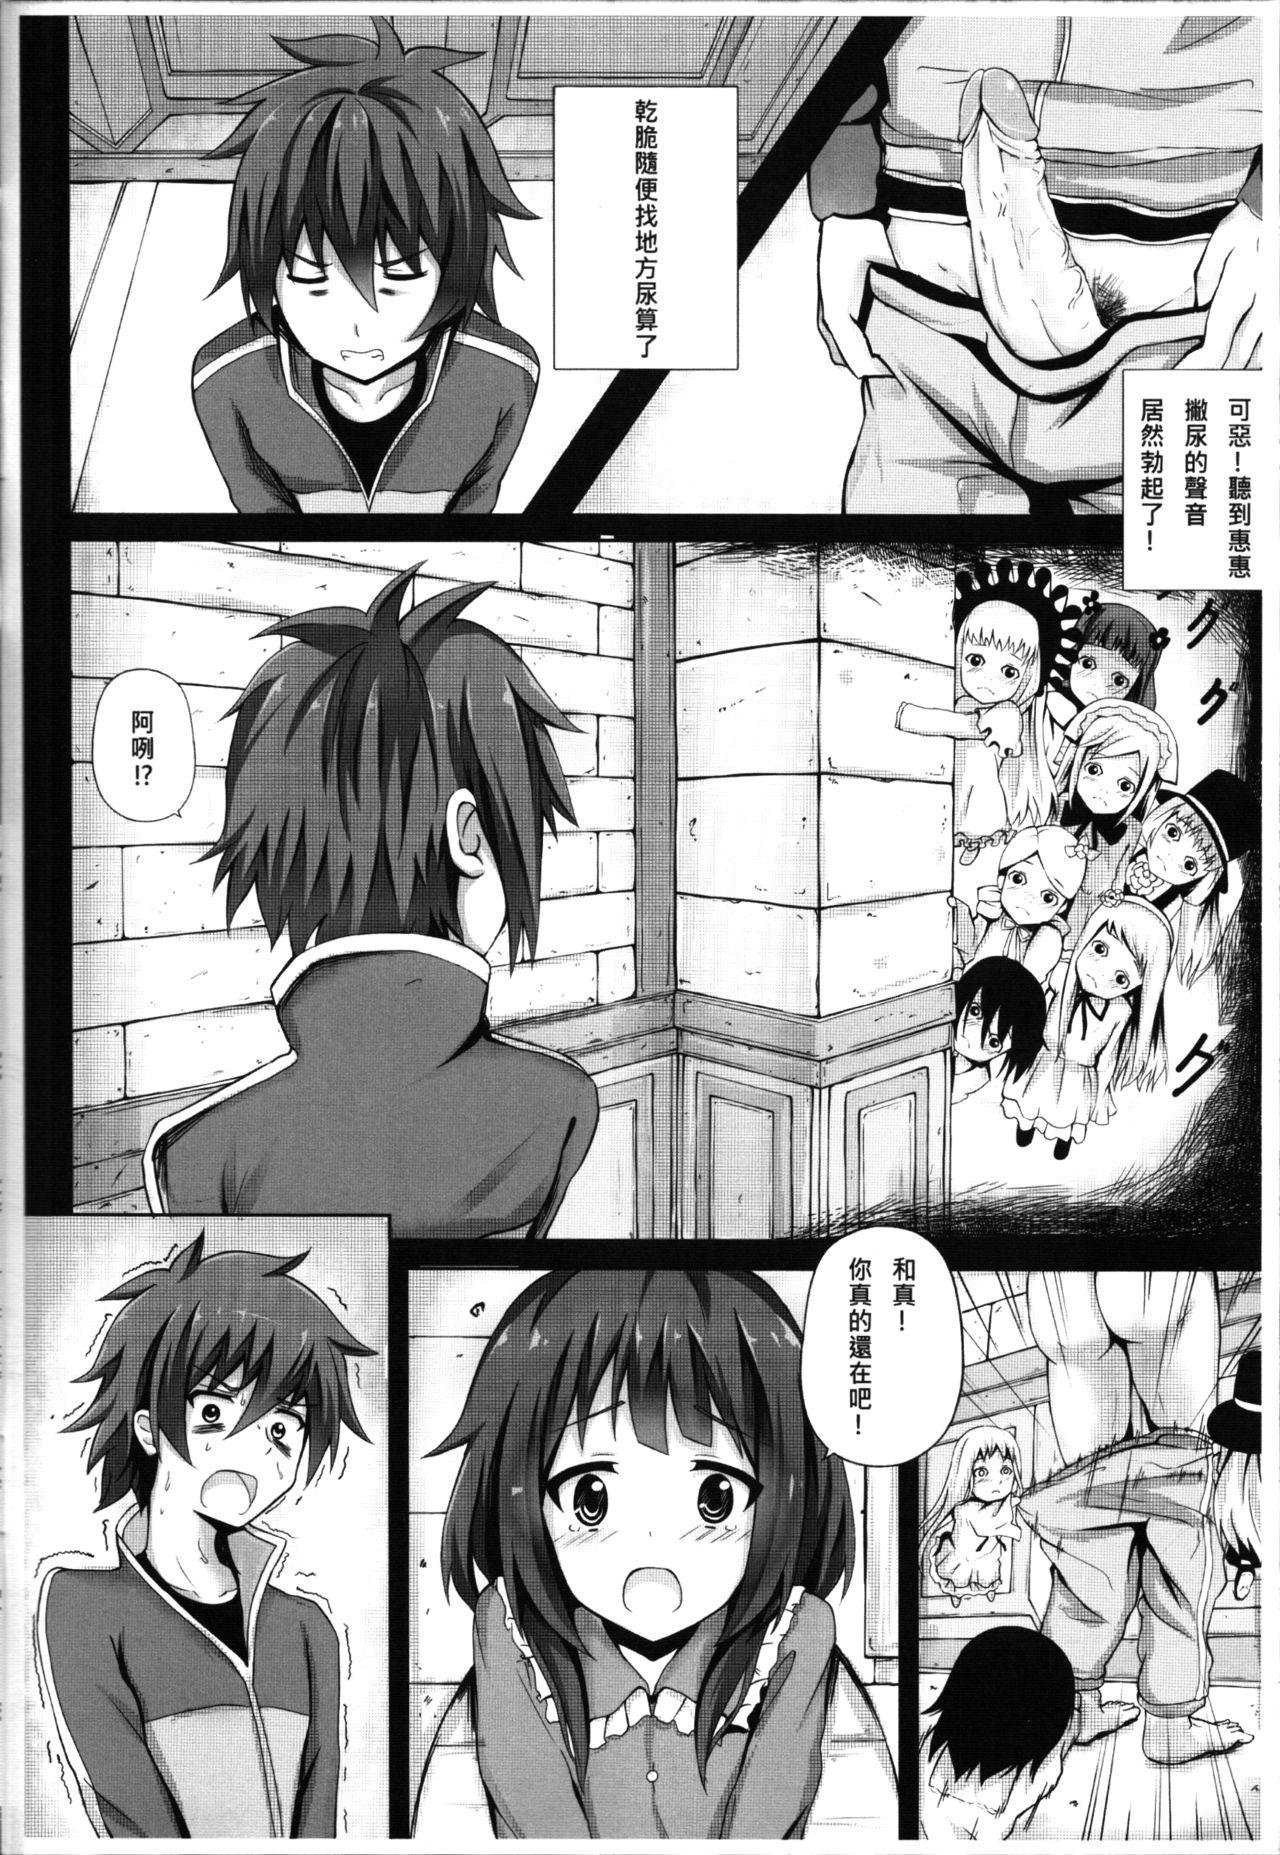 Giving ○○ to Megumin in the Toilet! 2